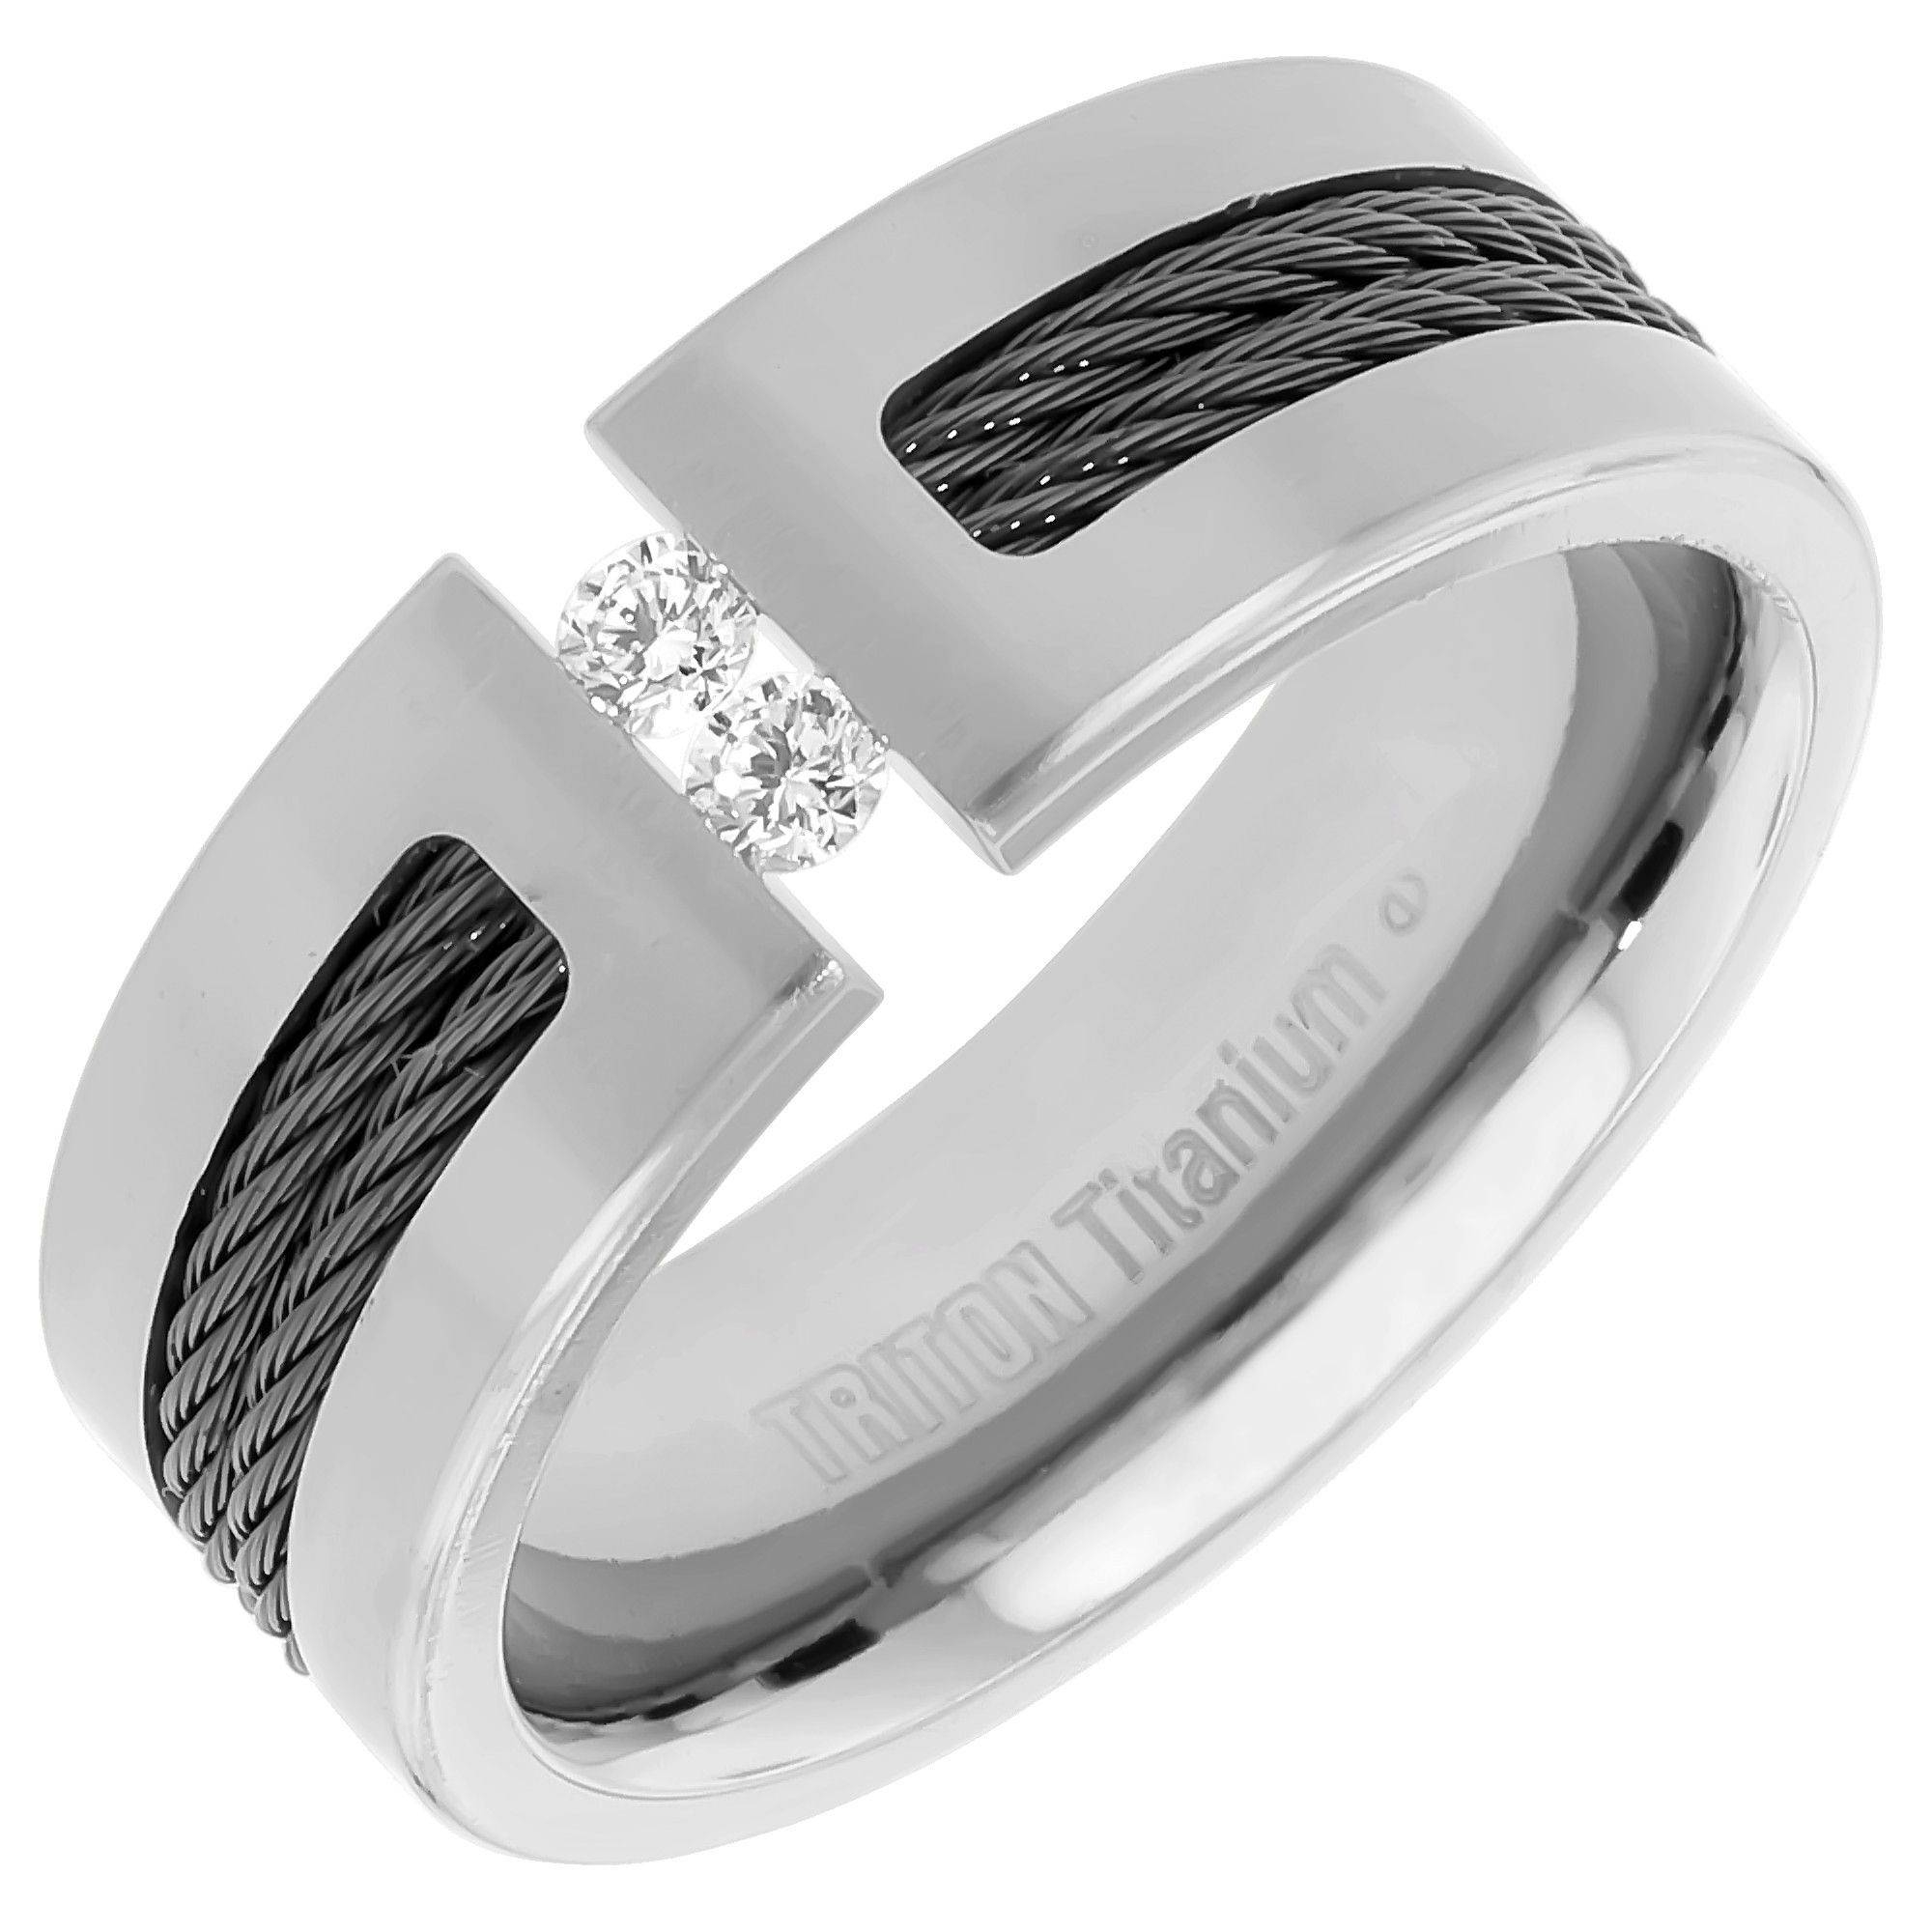 Overstock Mens Wedding Rings Luxury Sterling Silver Wedding Bands With Overstock Womens Wedding Bands (View 10 of 15)